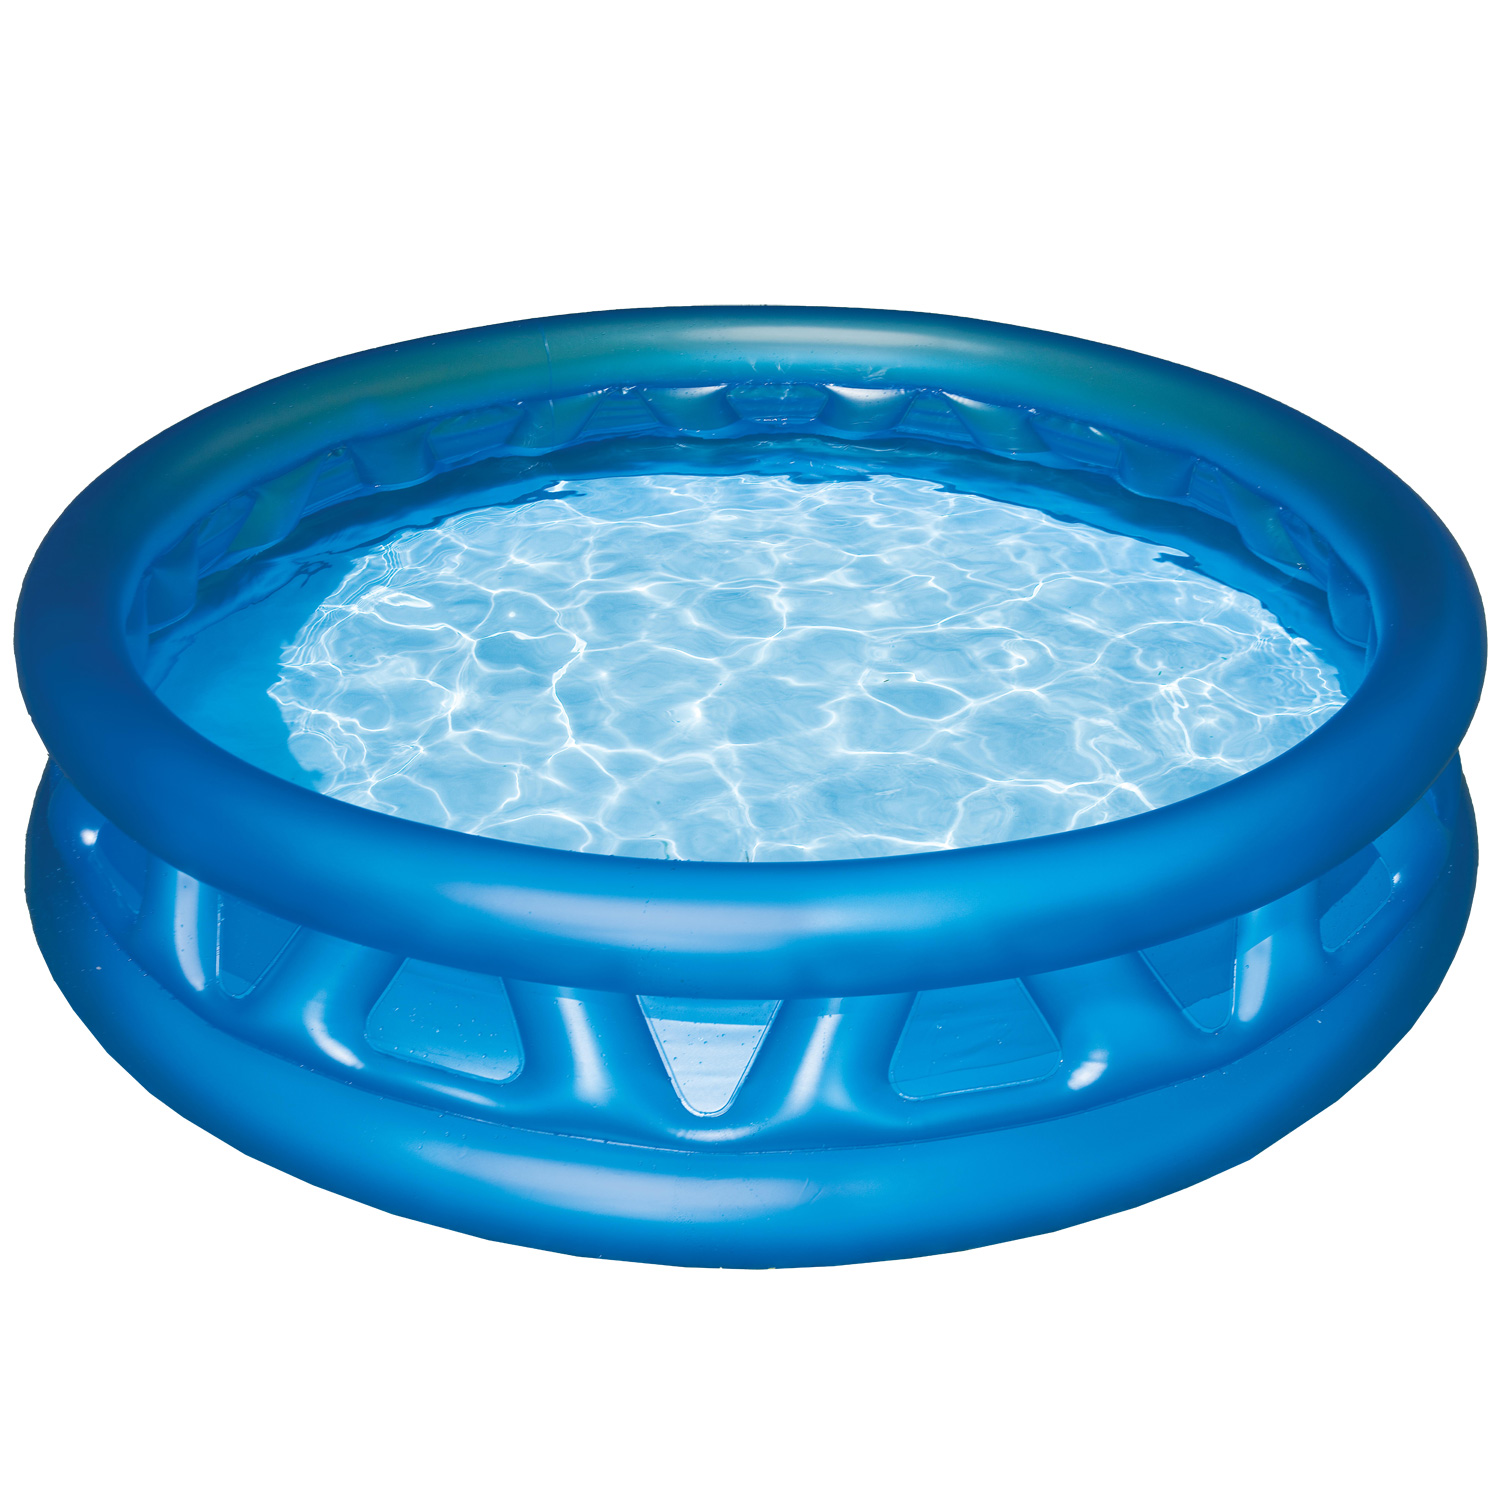 Piscine gonflable intex soft side pool piscines pour enfants for Balayeuse pour piscine gonflable